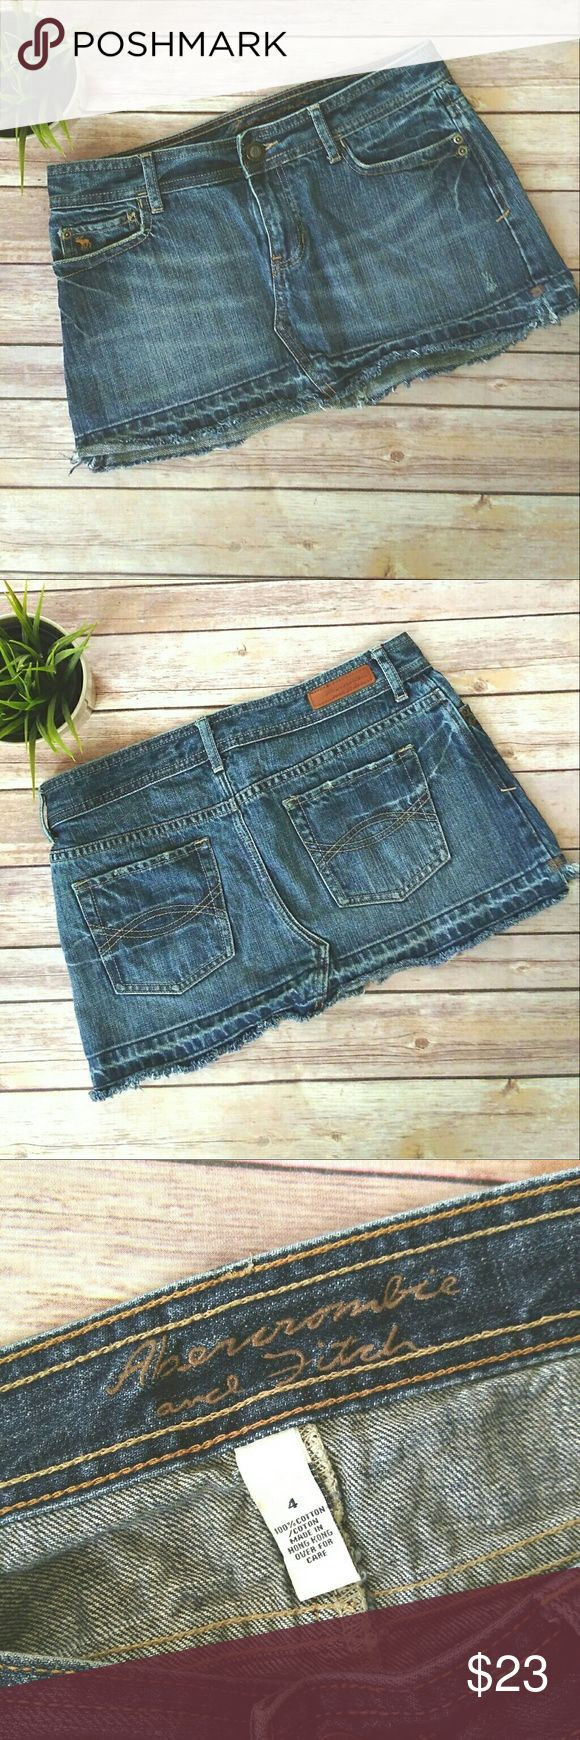 Abercrombie and Fitch denim mini skirt. Abercrombie and Fitch denim skirt.  It is a mini skirt in a  medium dark wash.  It has a distressed hem.  It is perfect for summer!  Looks great with everything!   Pet free smoke free home. Abercrombie & Fitch Skirts Mini